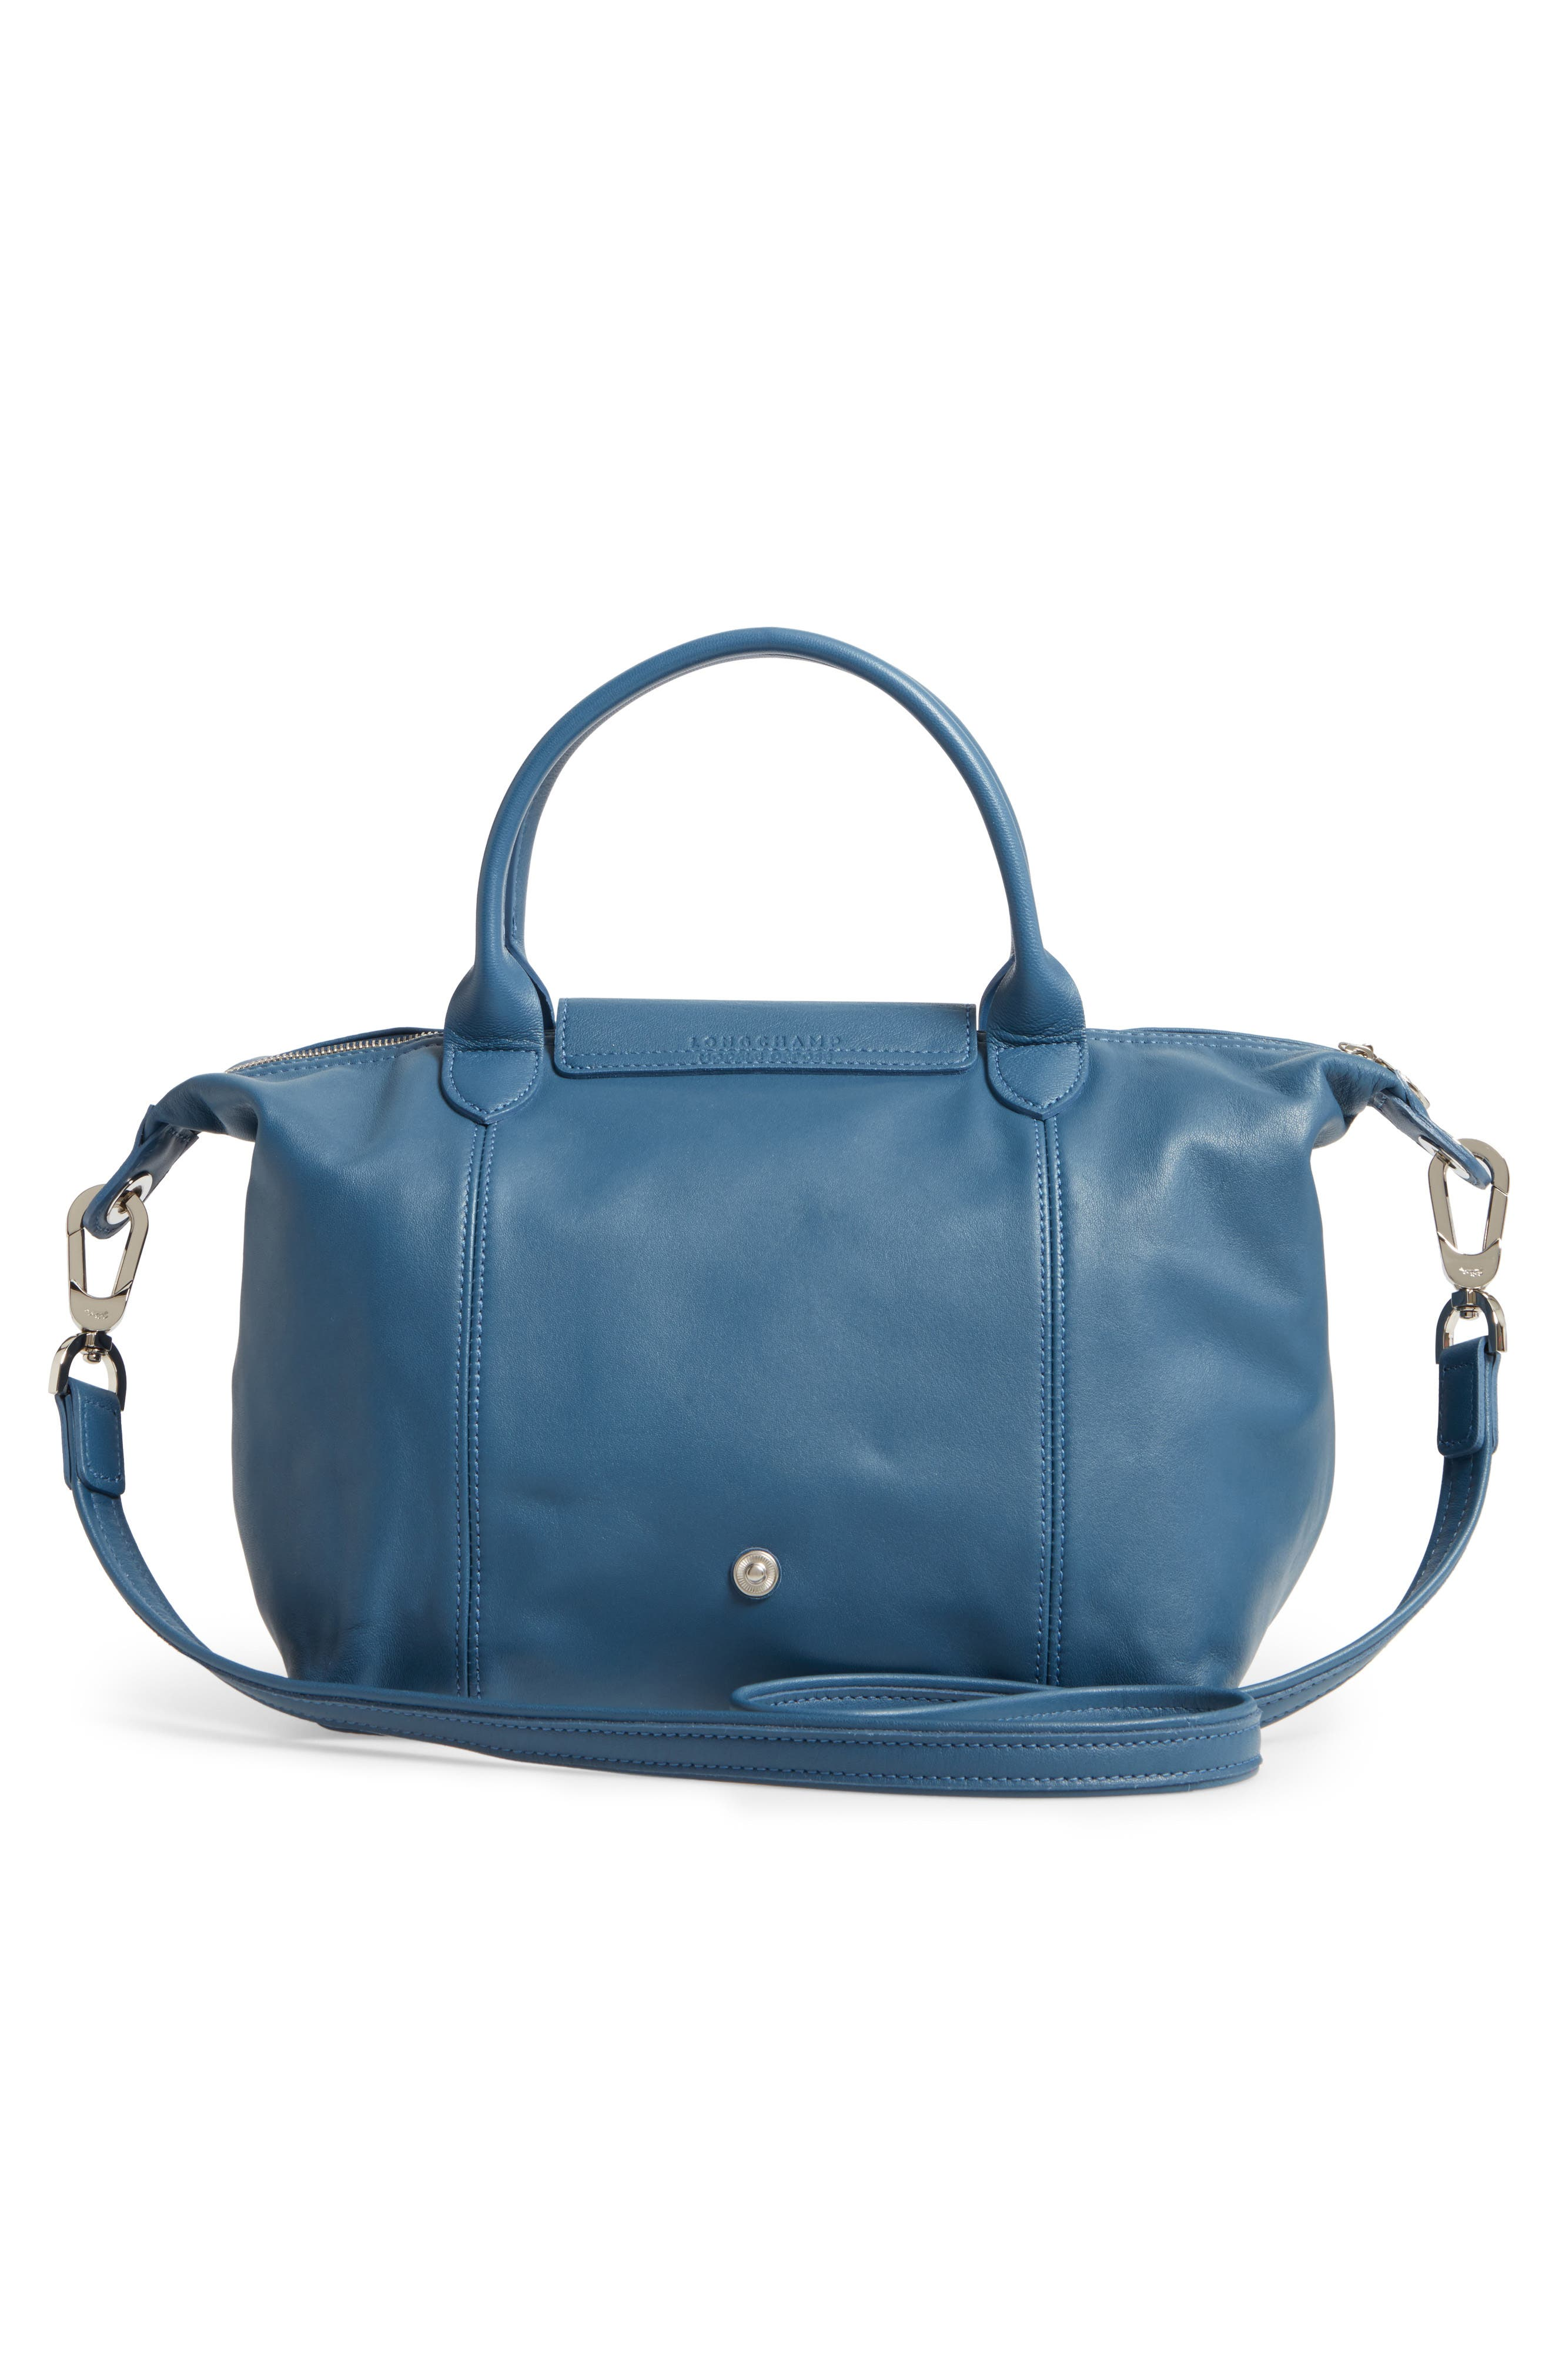 Alternate Image 2  - Longchamp 'Le Pliage Cuir' Leather Handbag